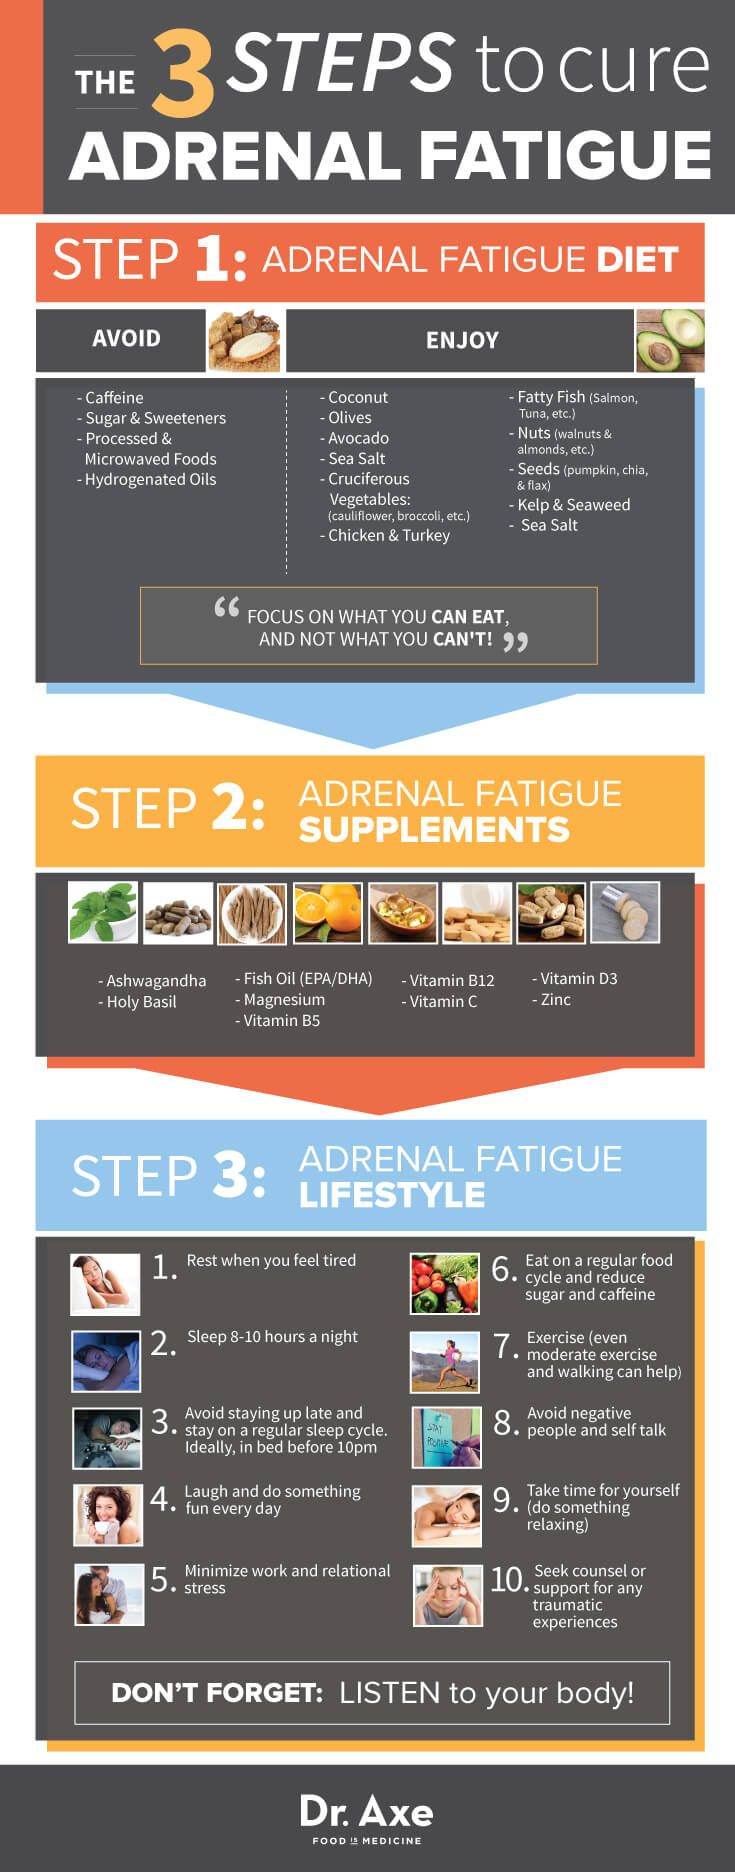 3 Steps to Heal Adrenal Fatigue. Also, DGL licorice is missing from the chart, and should be taken for the first 4 weeks. It should be used with caution, so do research.